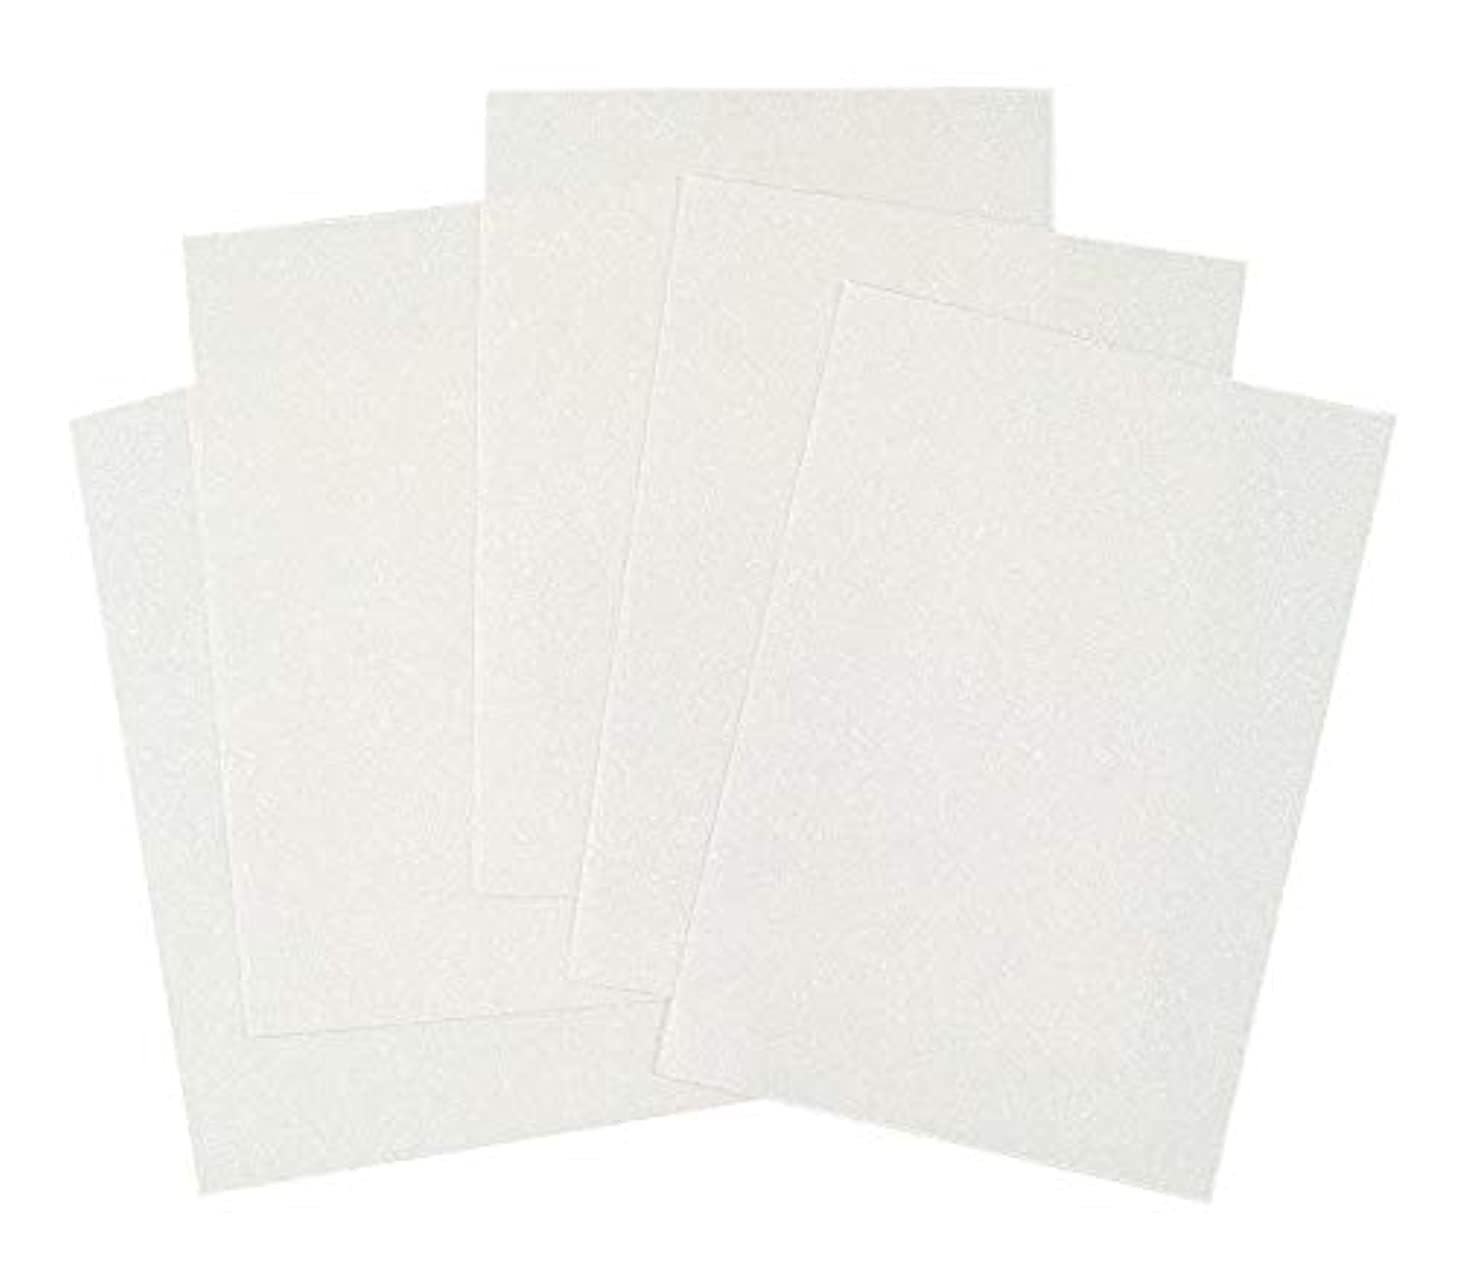 Glitter Adhesive Acetate - 5 Pack | Paper Wishes Exclusive